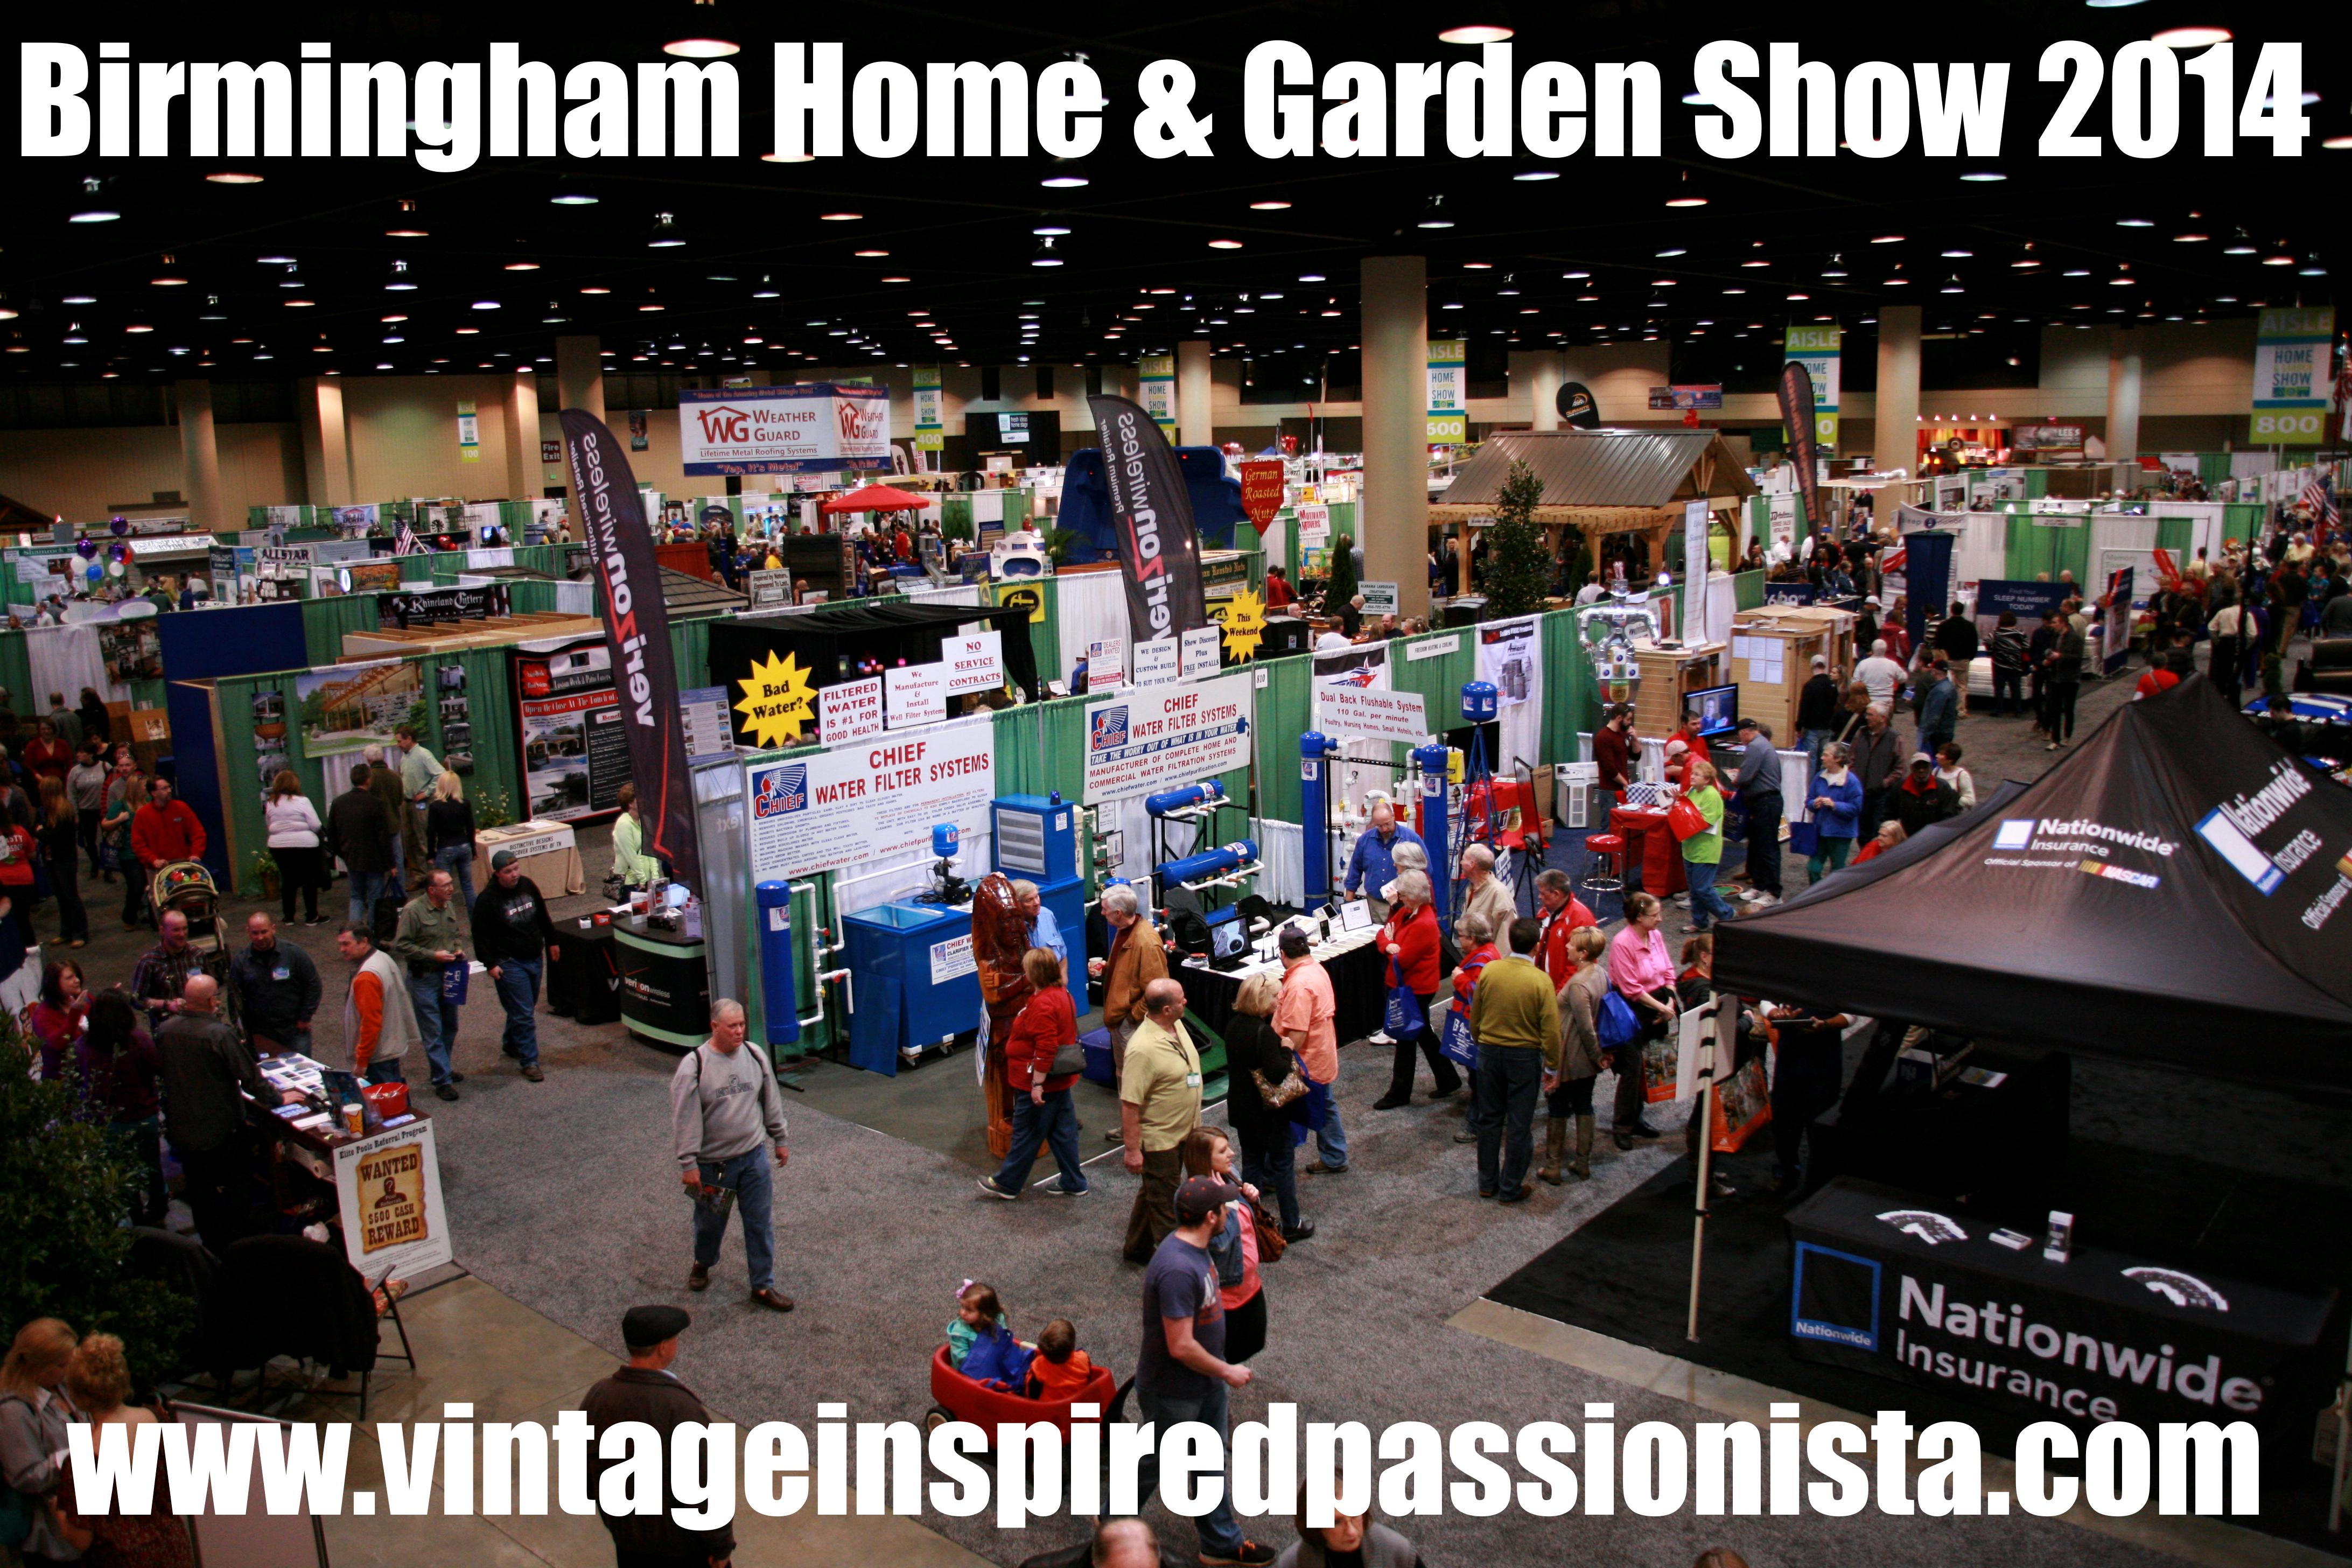 Genial The Birmingham Home And Garden Show 2014 Was Four Days Jammed Pack With  Celebrity Guests, Food Tastings, Inspiring Outdoor Displays, Local Vendors,  ...